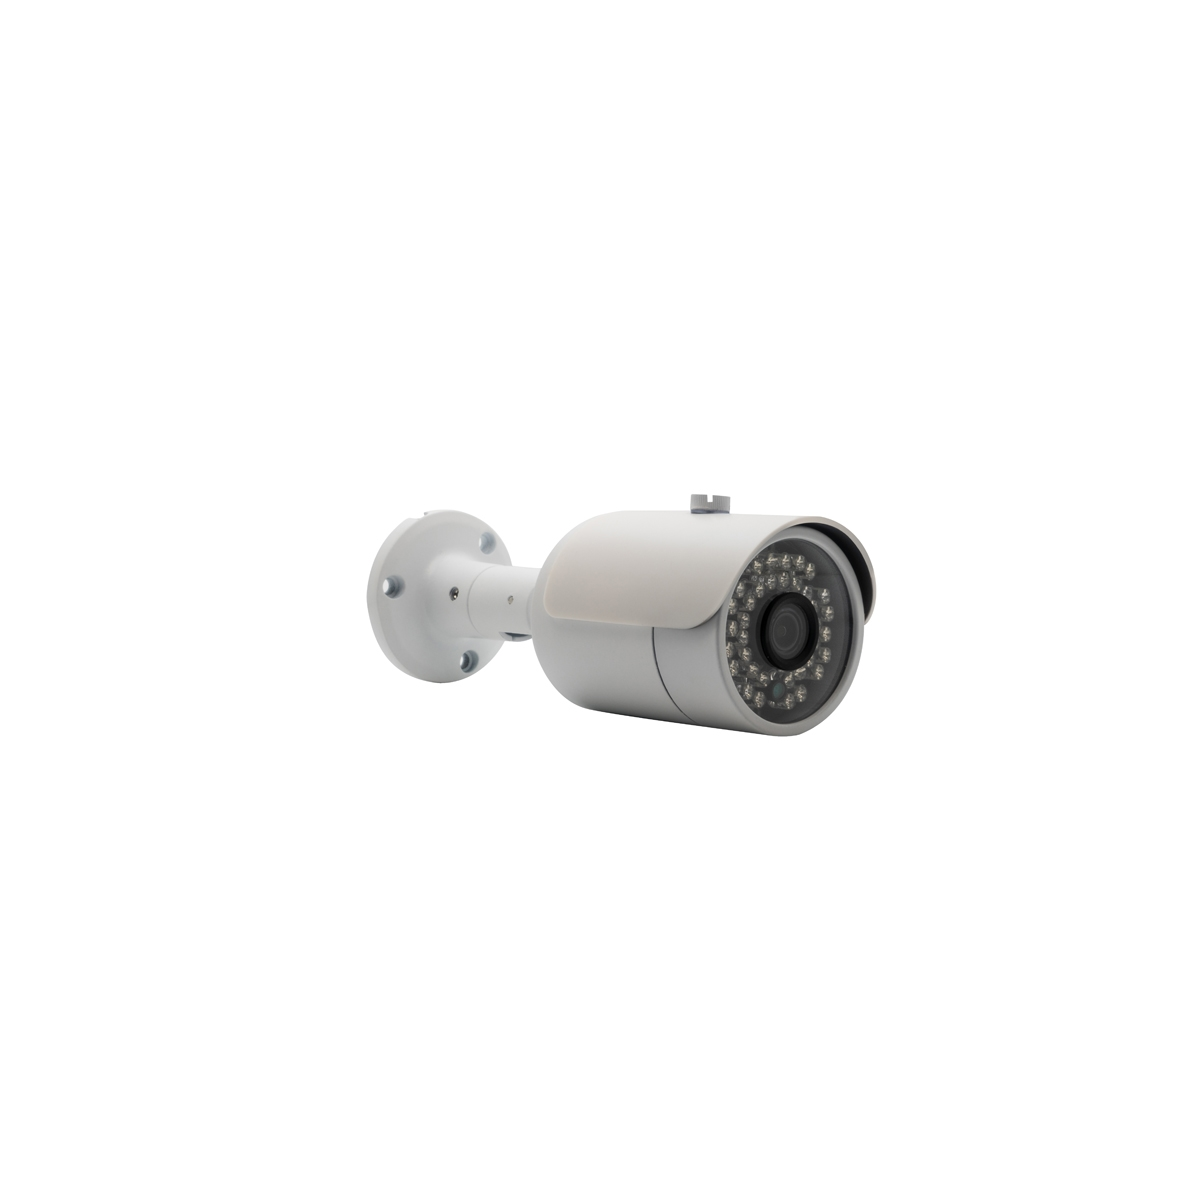 HBF 60XX-IPC 2MP 3.6MM 36 SMART IR LED POE H.265 METAL KASA IP GECE GÖRÜŞLÜ KAMERA